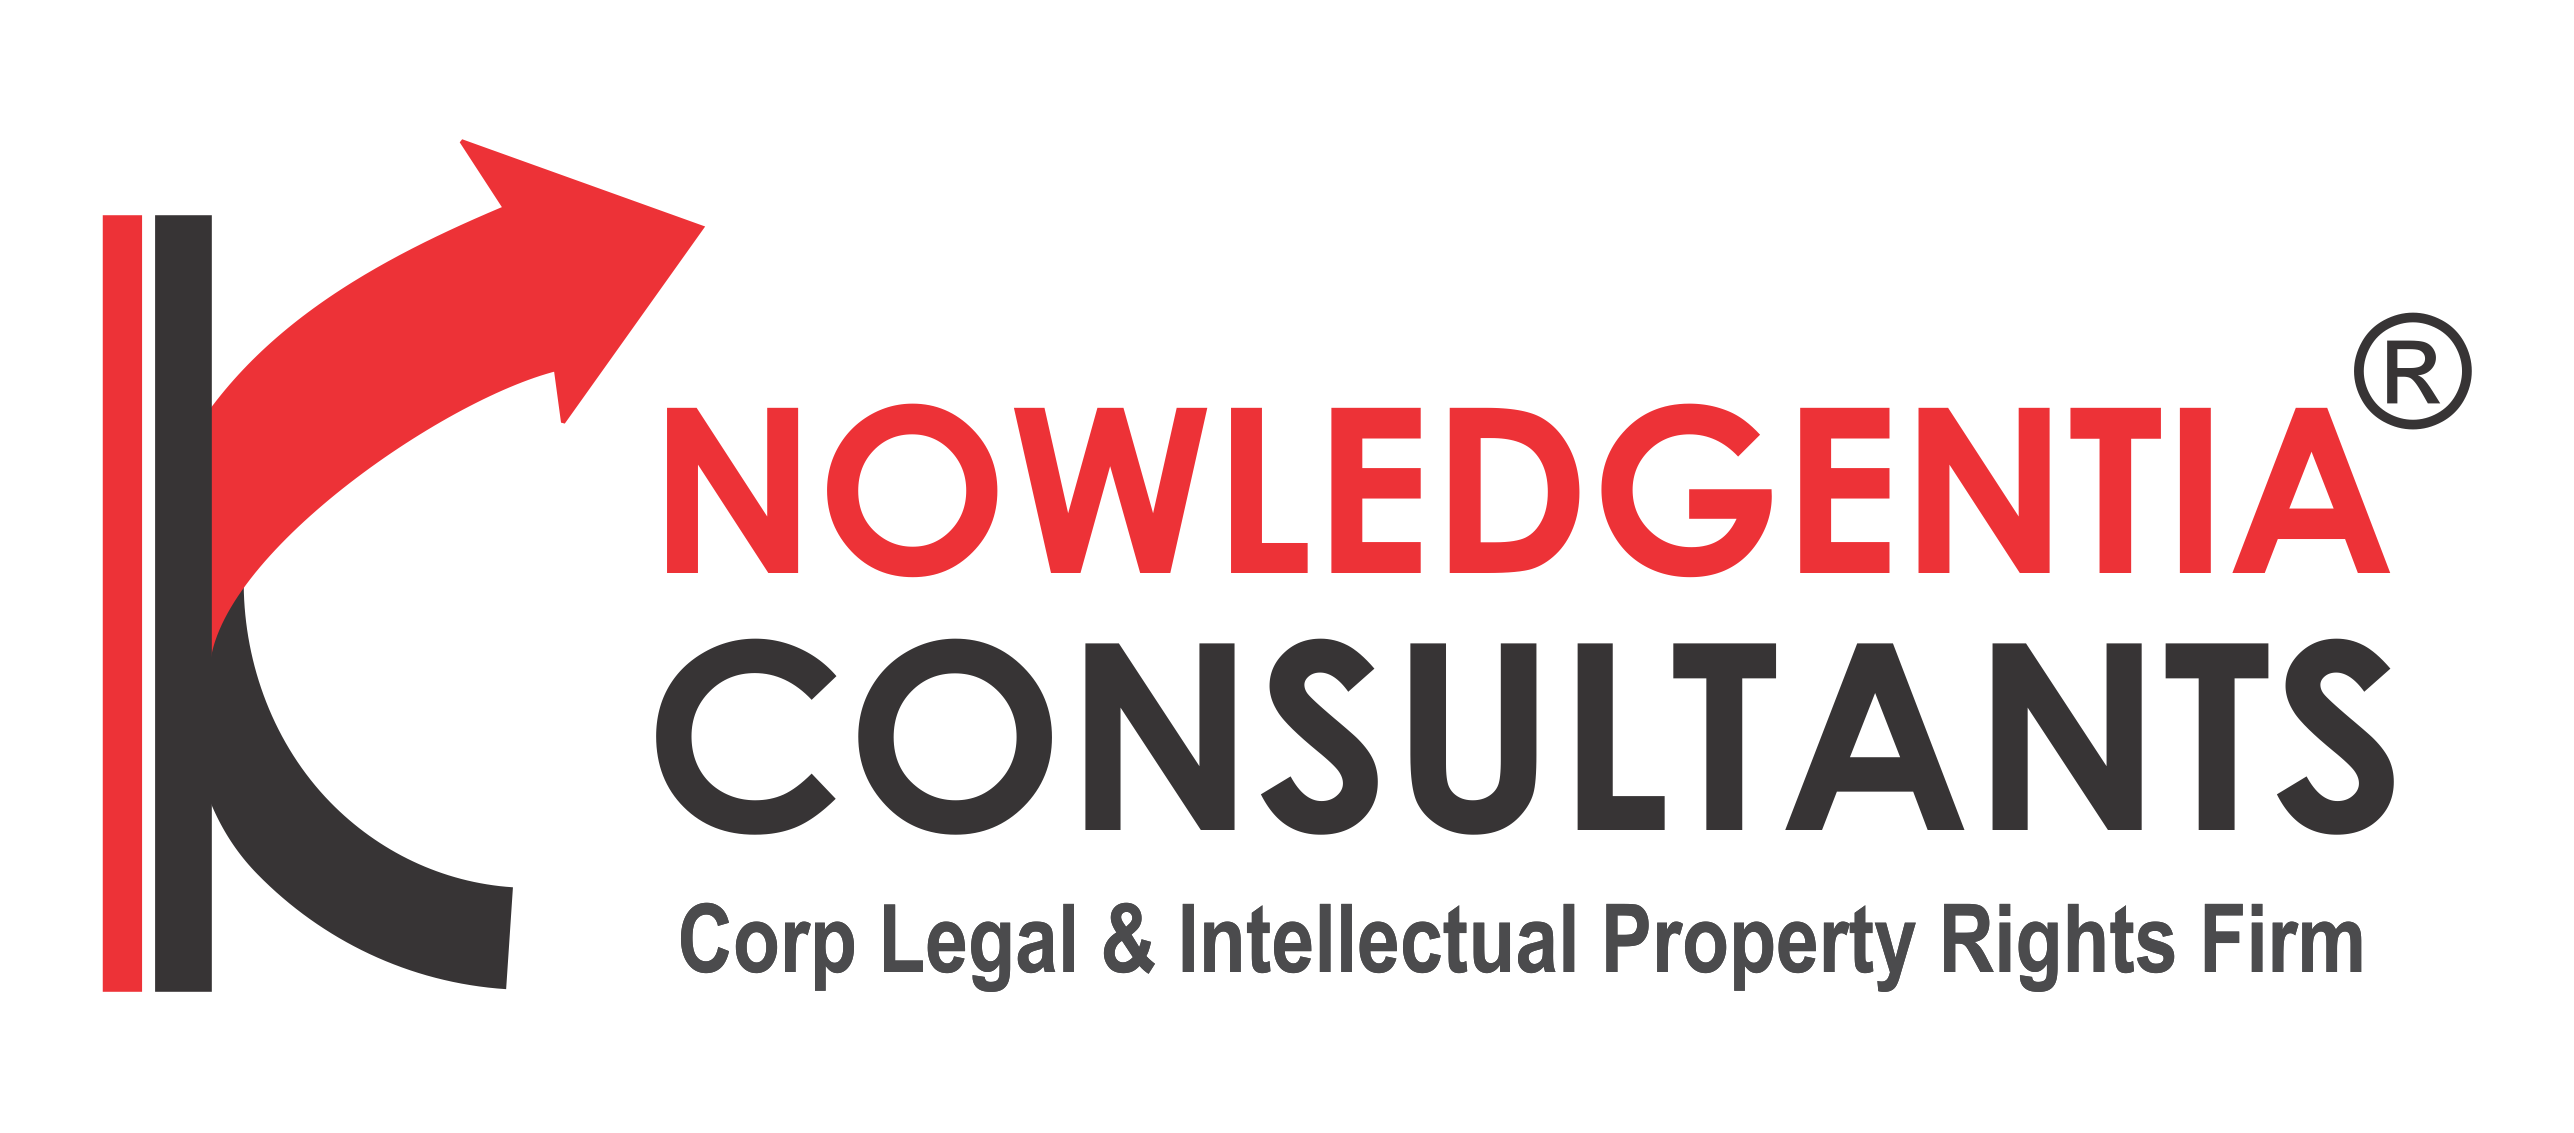 Best Law Firm in India